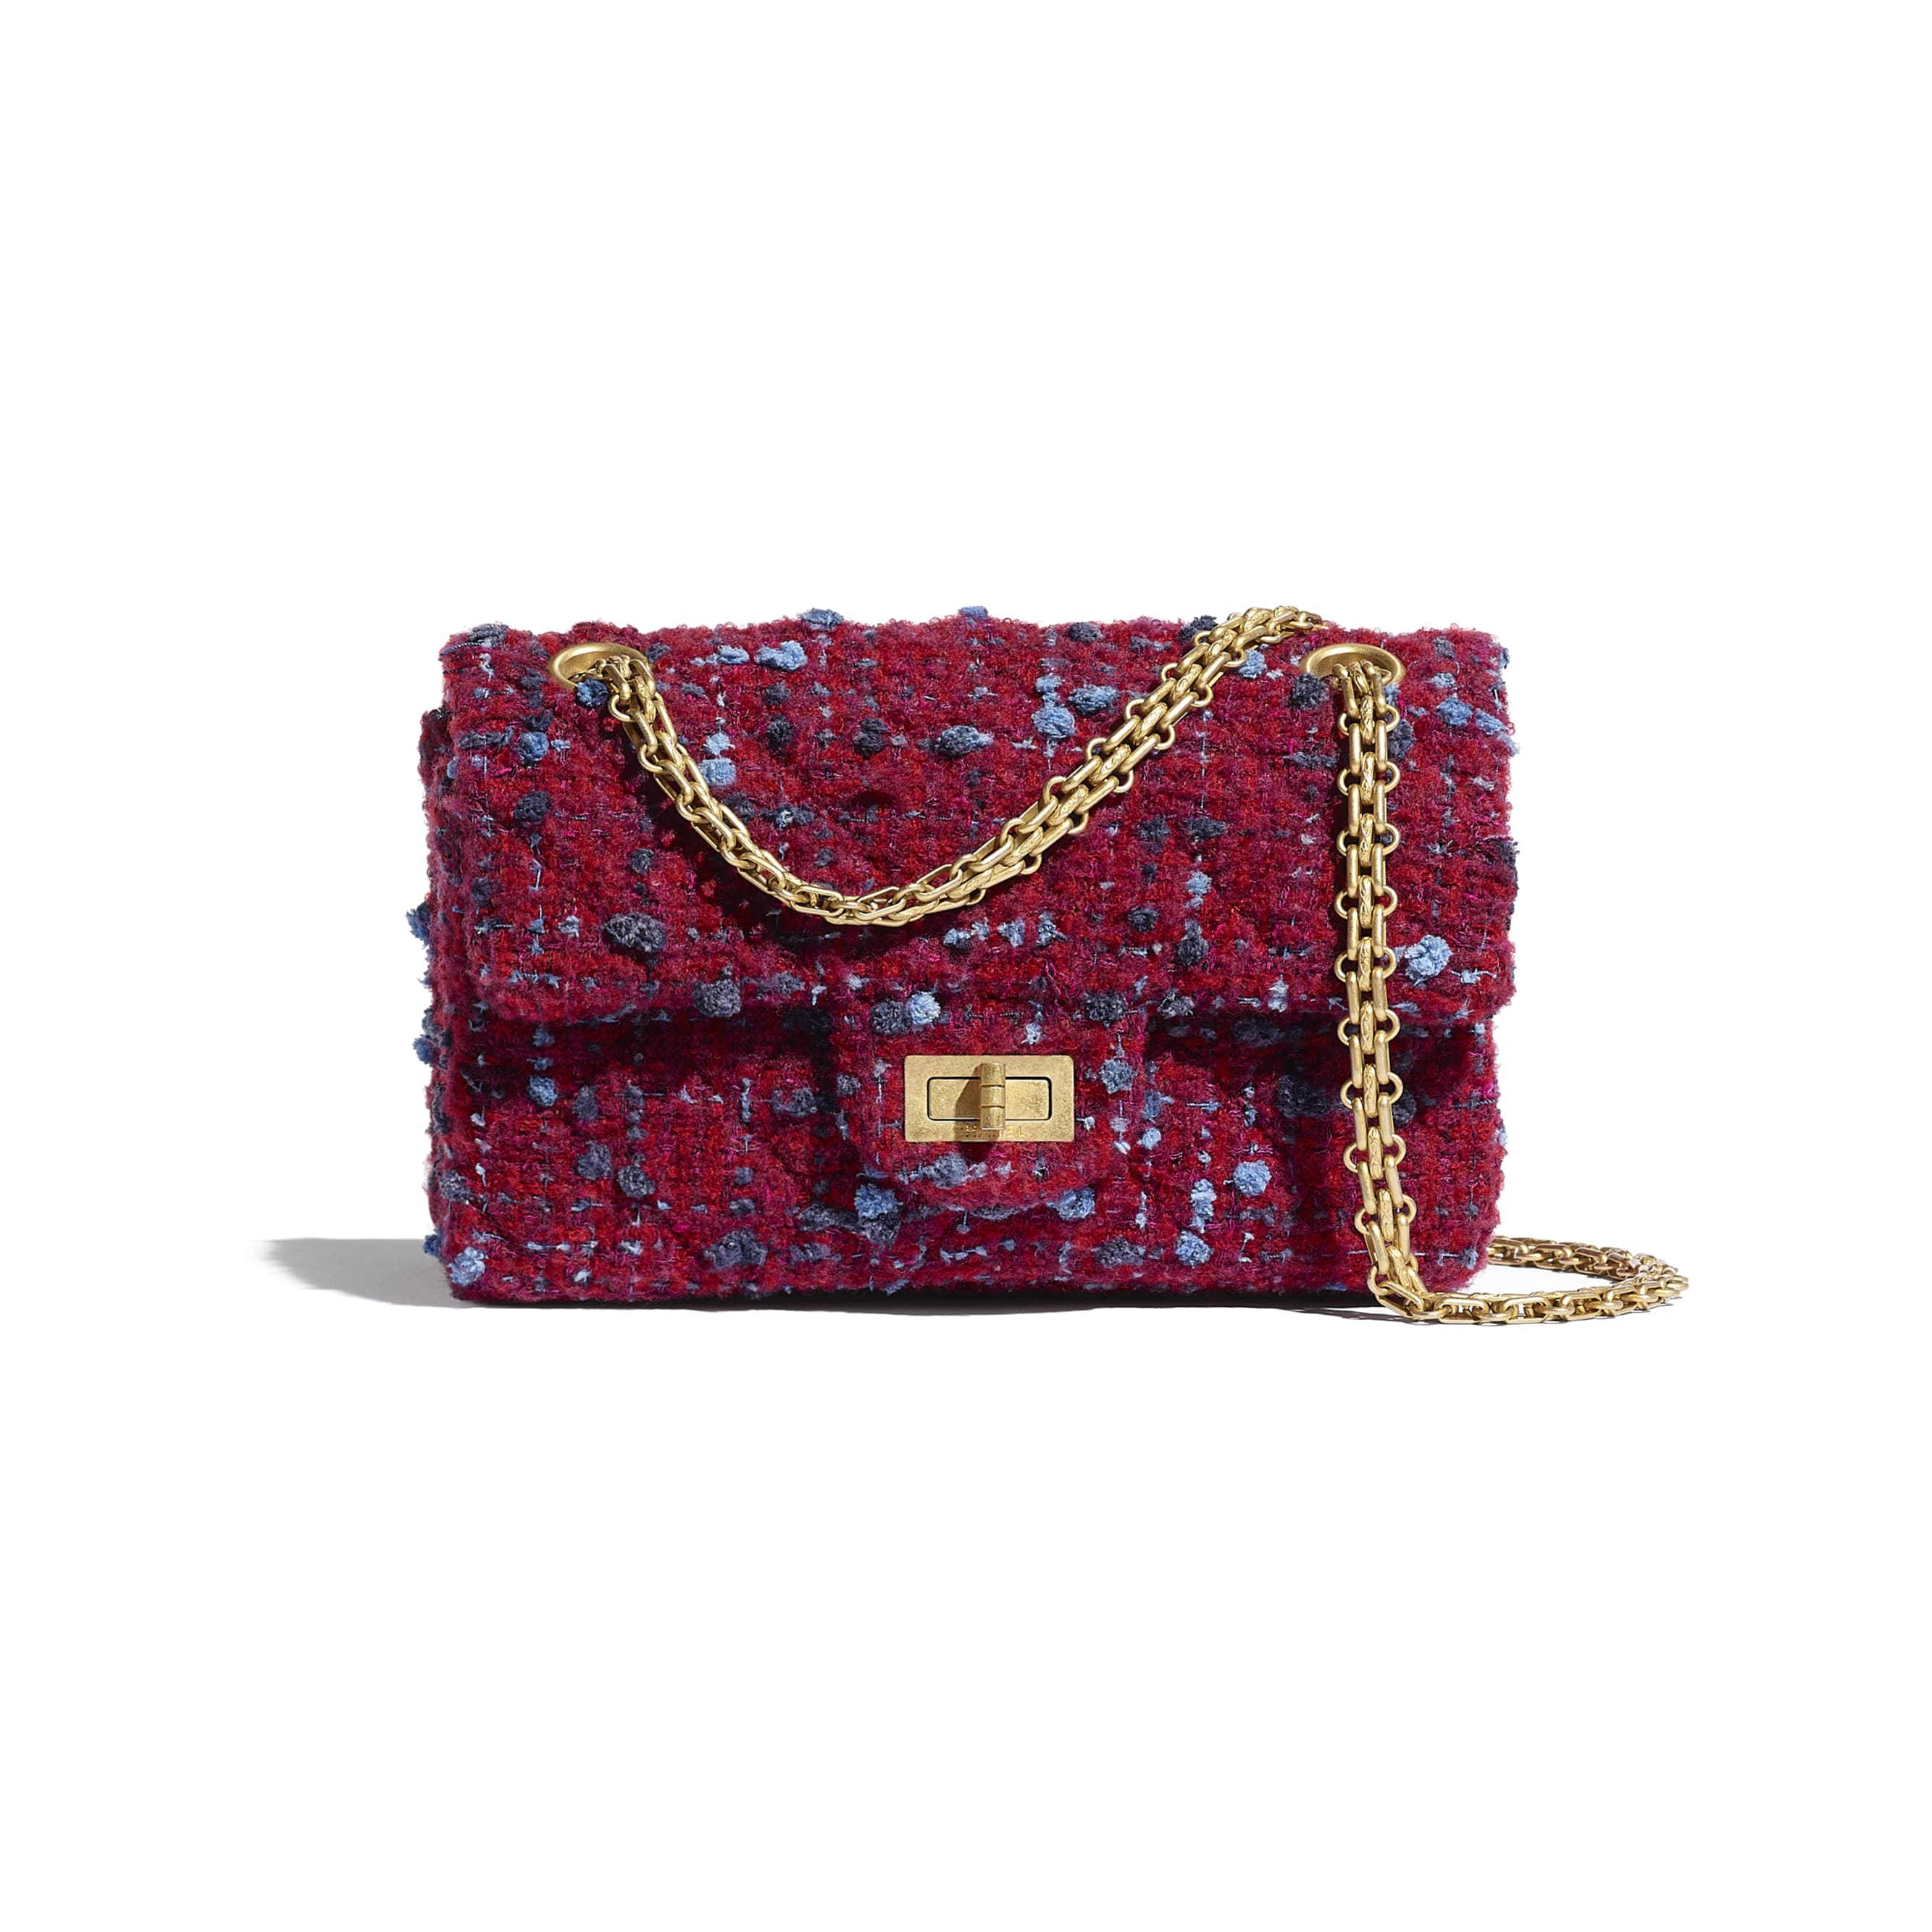 Mini 2.55 Handbag - Burgundy, Blue & Grey - Tweed & Gold Metal - CHANEL - Default view - see standard sized version